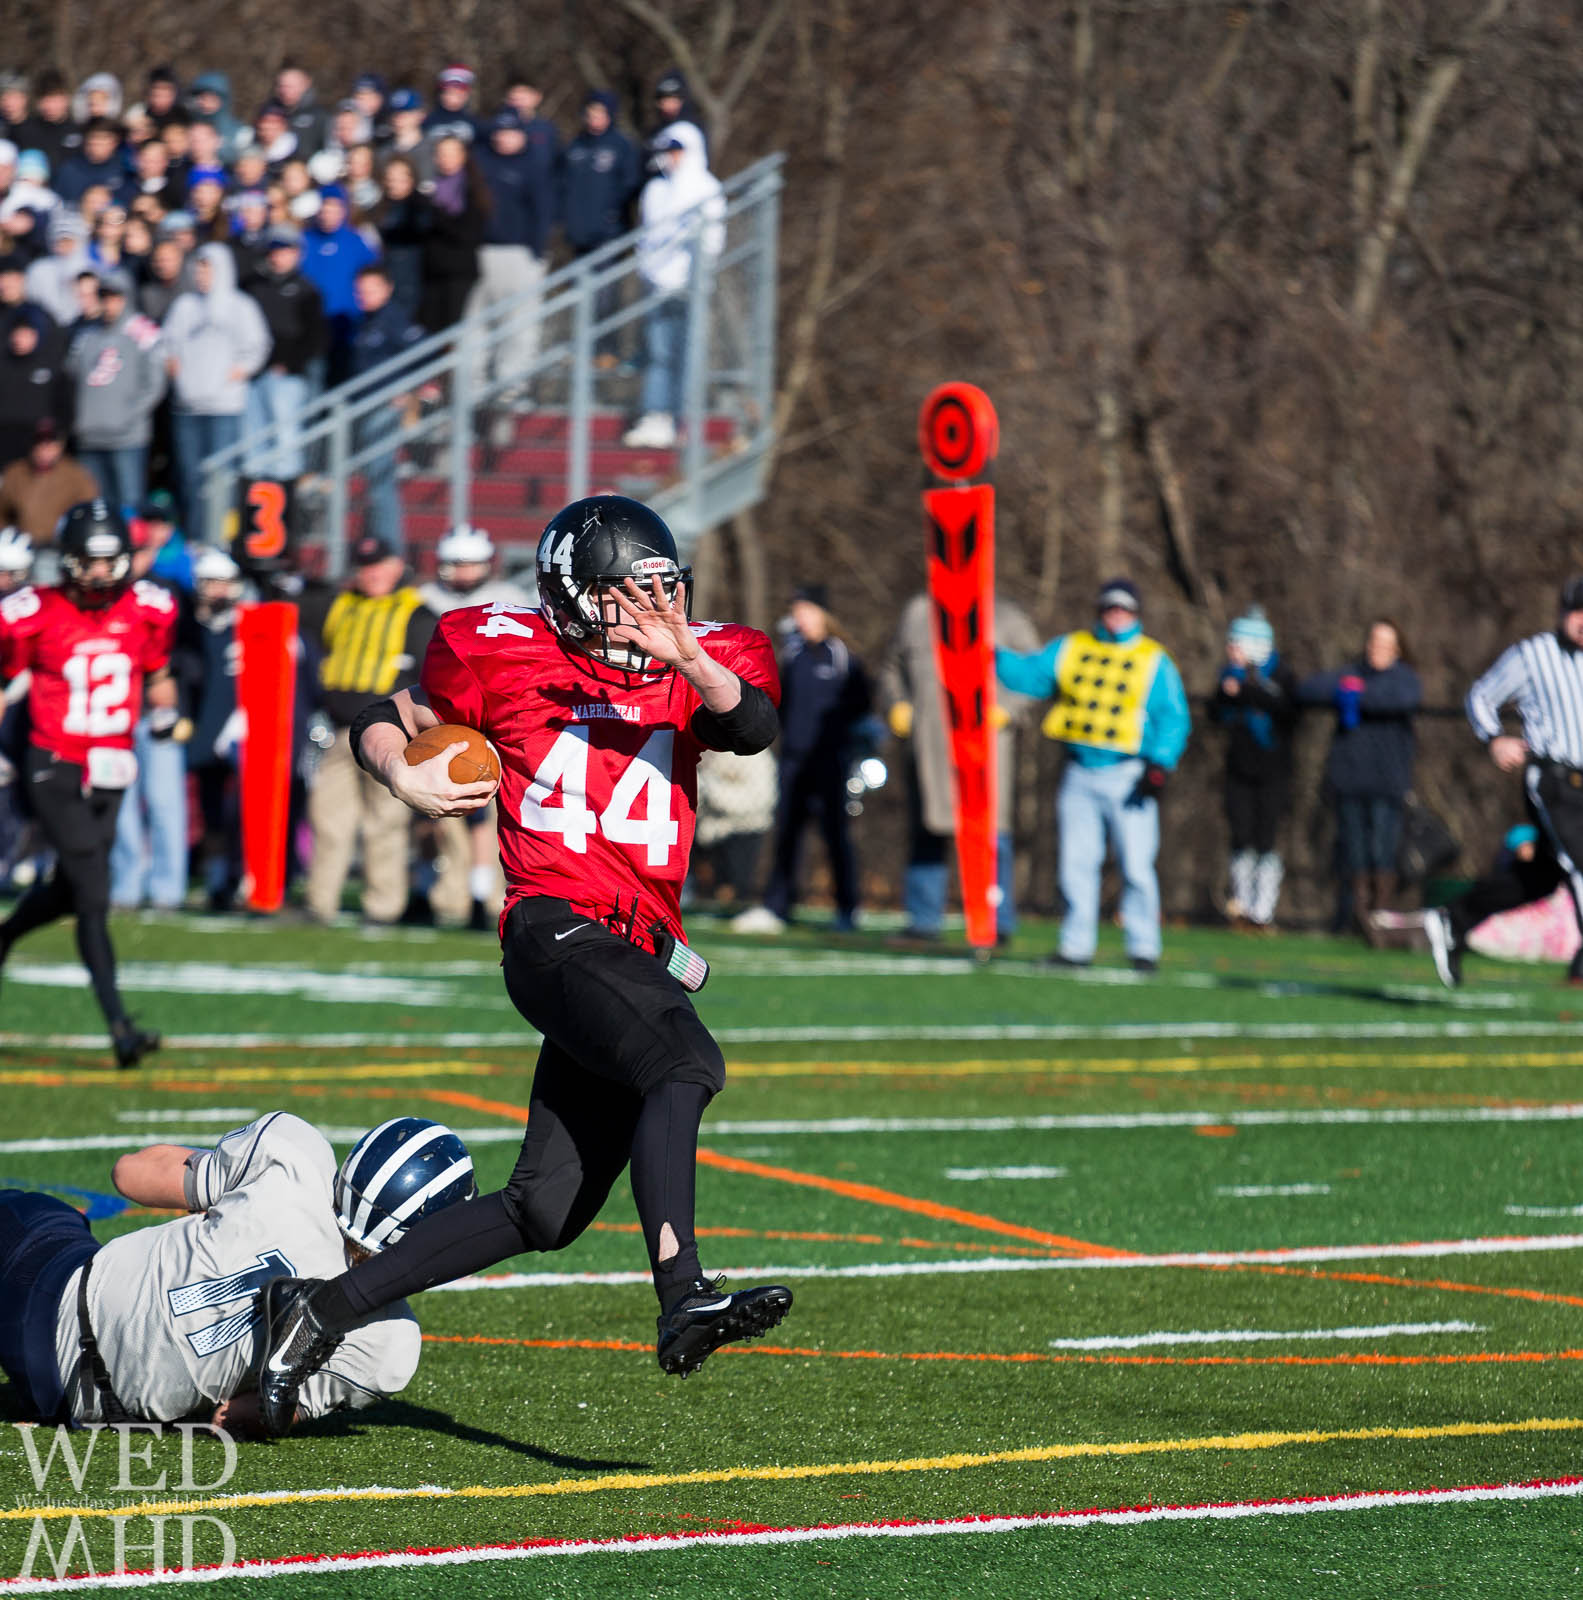 The Annual Thanksgiving Football Game – Marblehead vs Swampscott